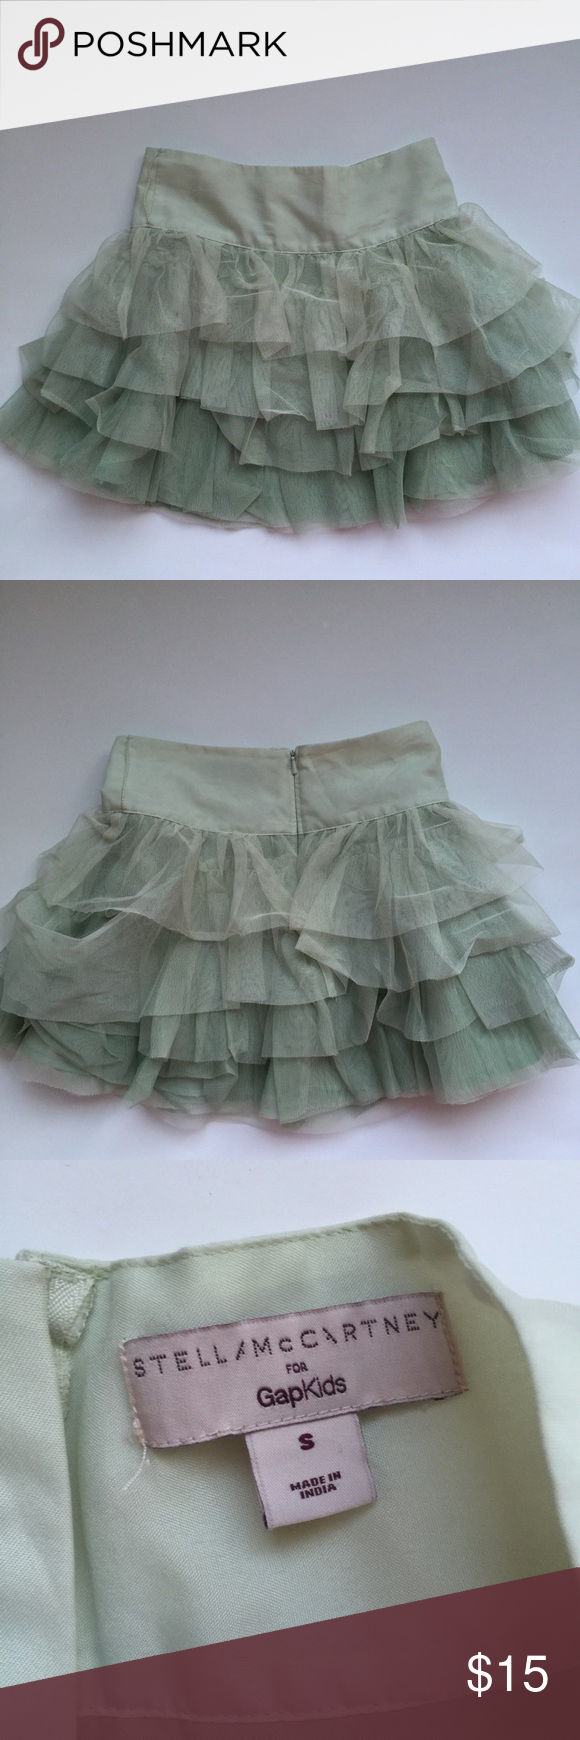 Gap Skirt Beautiful light green tiered skirt from Stella McCartney's gap kids line. Has a small tear on the back (see last pic) but is barely noticeable when worn. Gap Bottoms Skirts